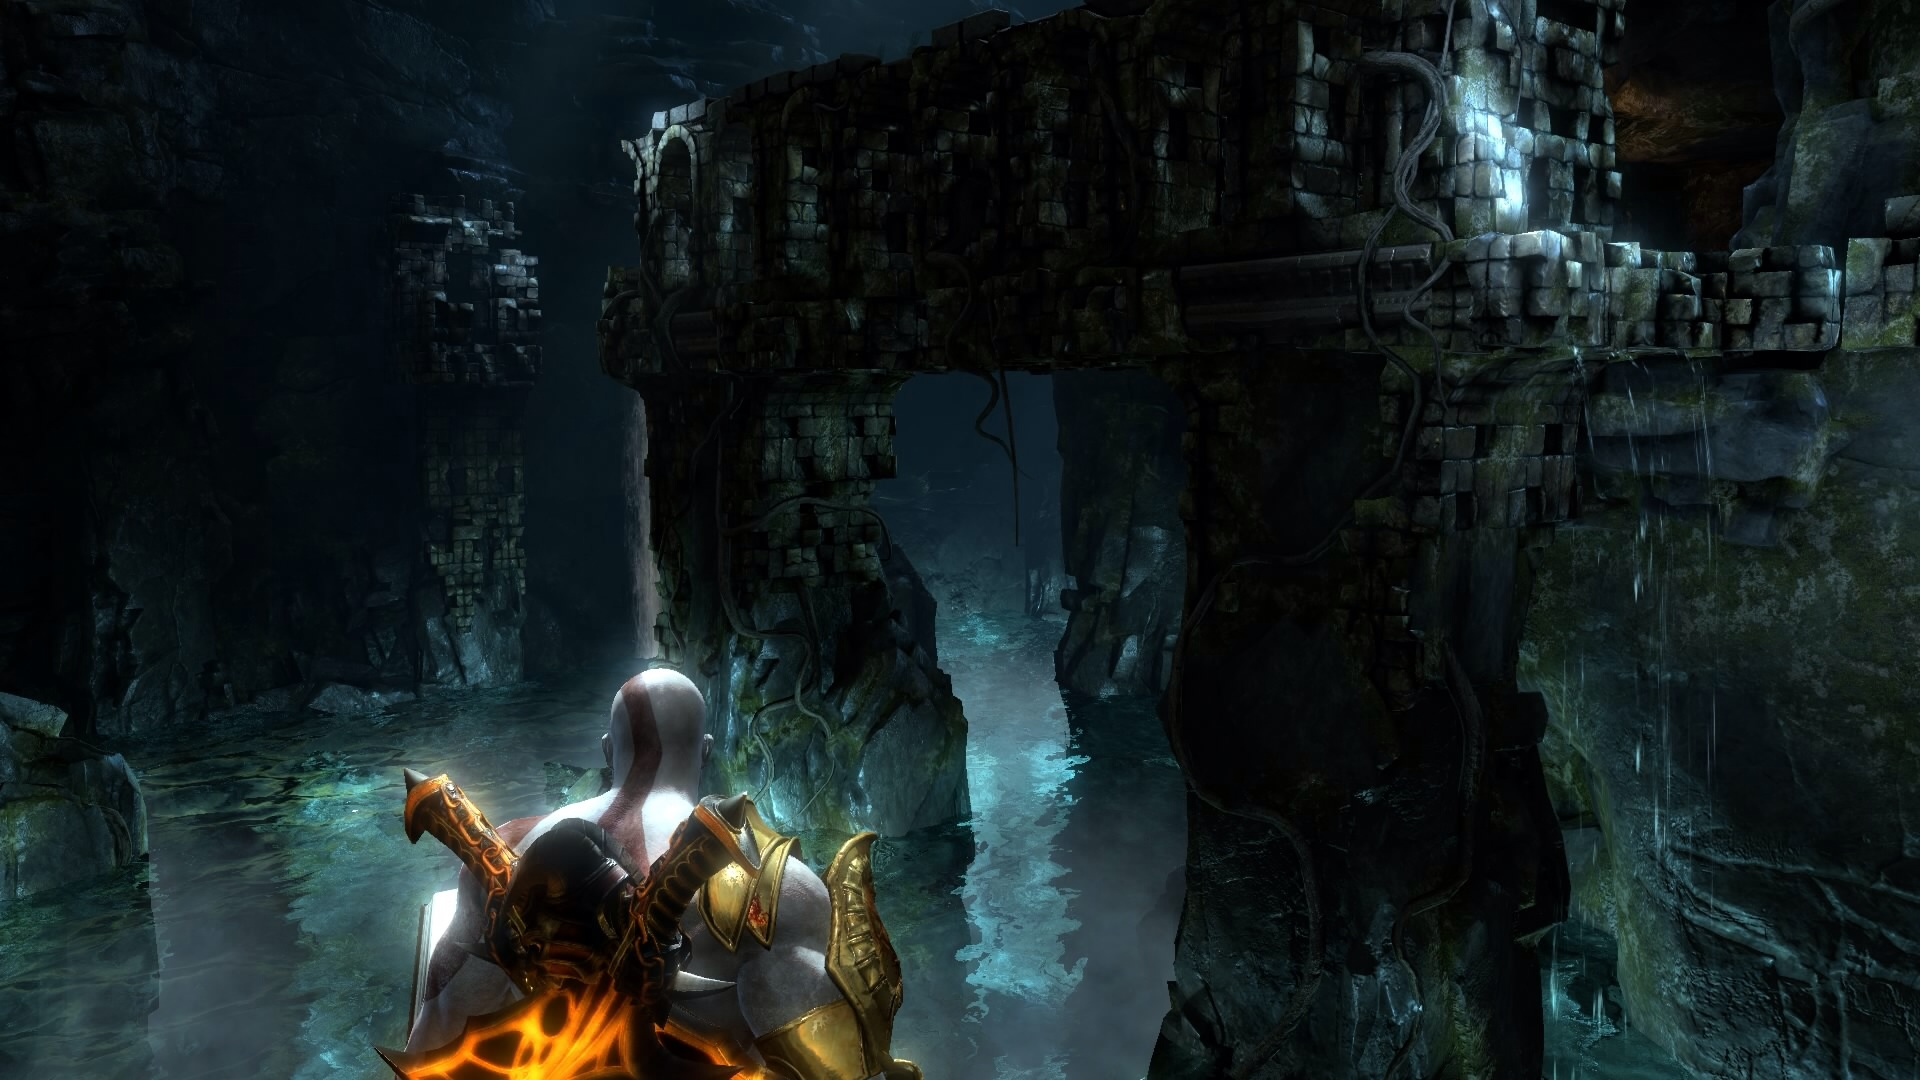 http://www.vgnetwork.it/images/god_of_war_3_remastered/god-of-war-3-remastered-01.jpg